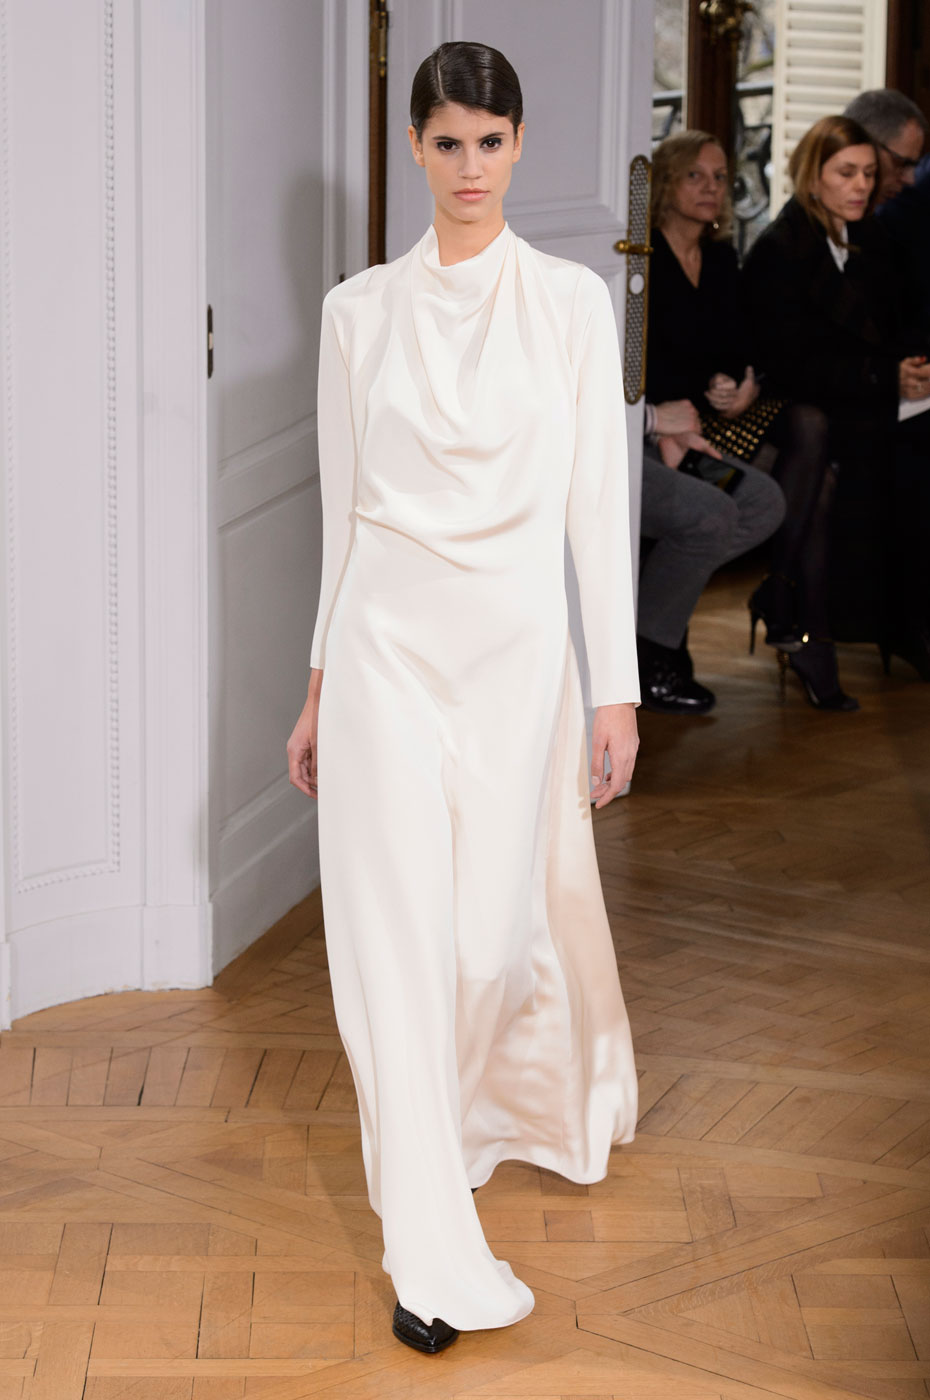 Bouchra-Jarrar-fashion-runway-show-haute-couture-paris-spring-summer-2015-the-impression-19